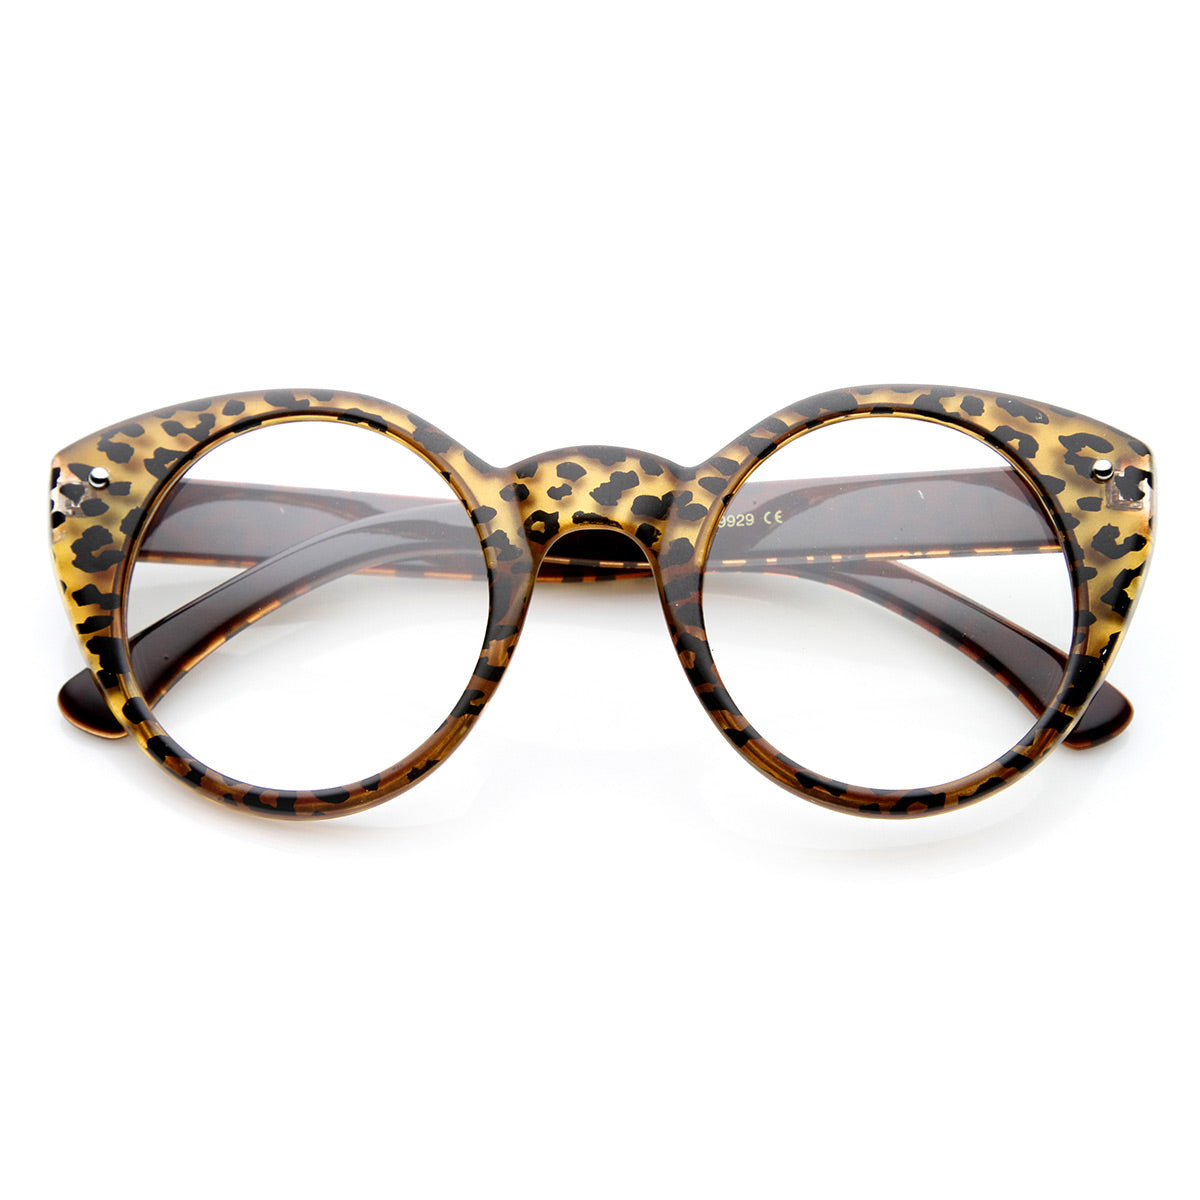 55e3e46673 Round Cat Eye Clear Fashion Frame Glasses - sunglass.la